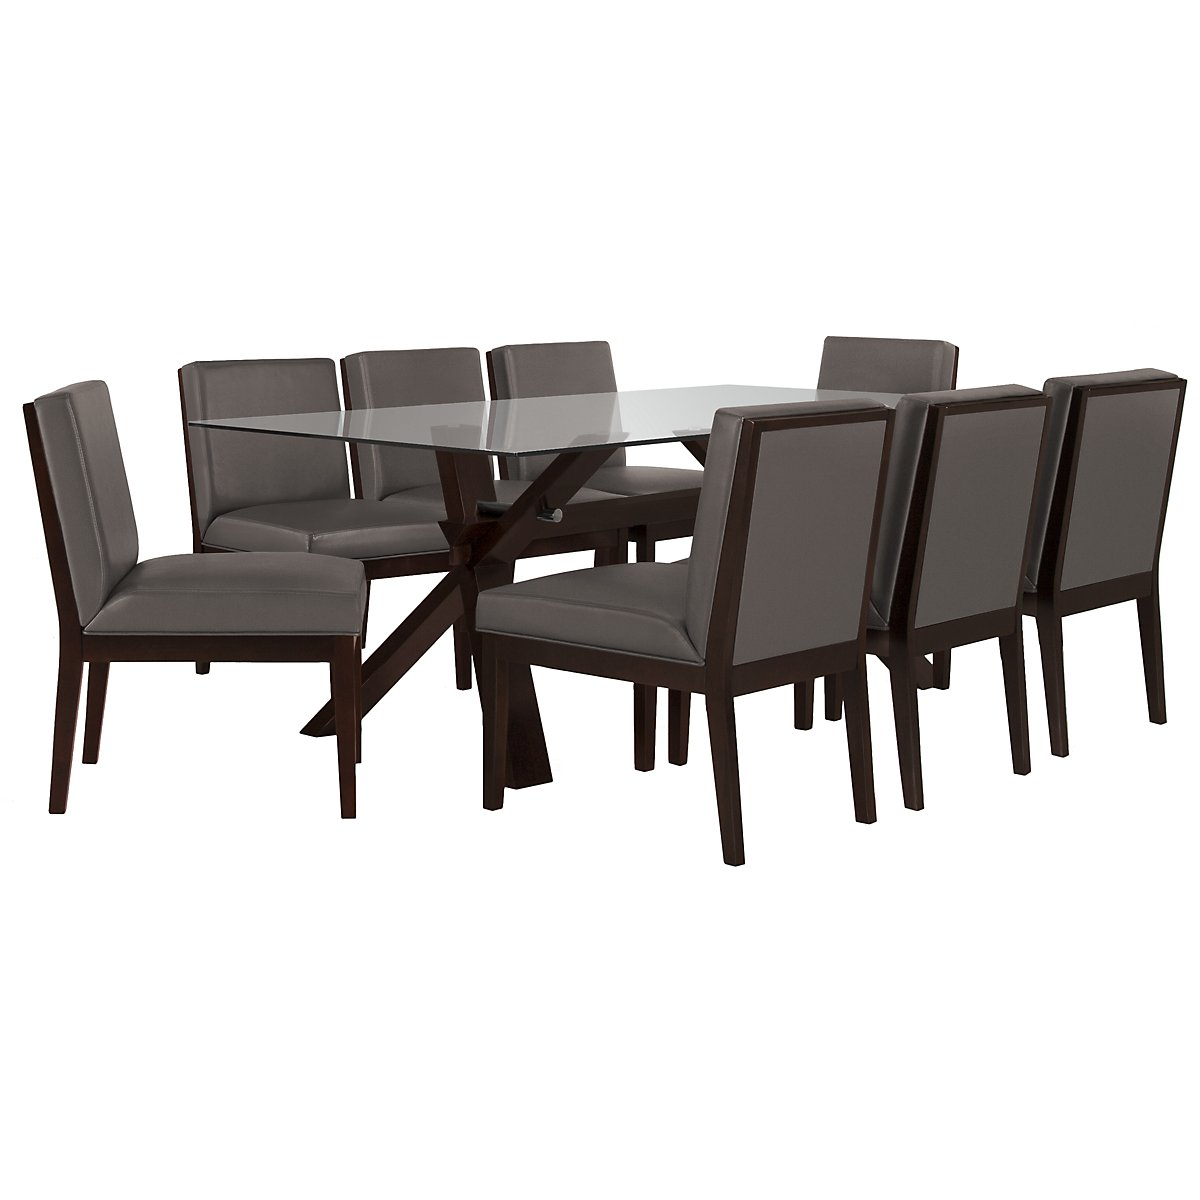 "Emma Dark Gray 83"" Table & 4 Bonded Chairs"